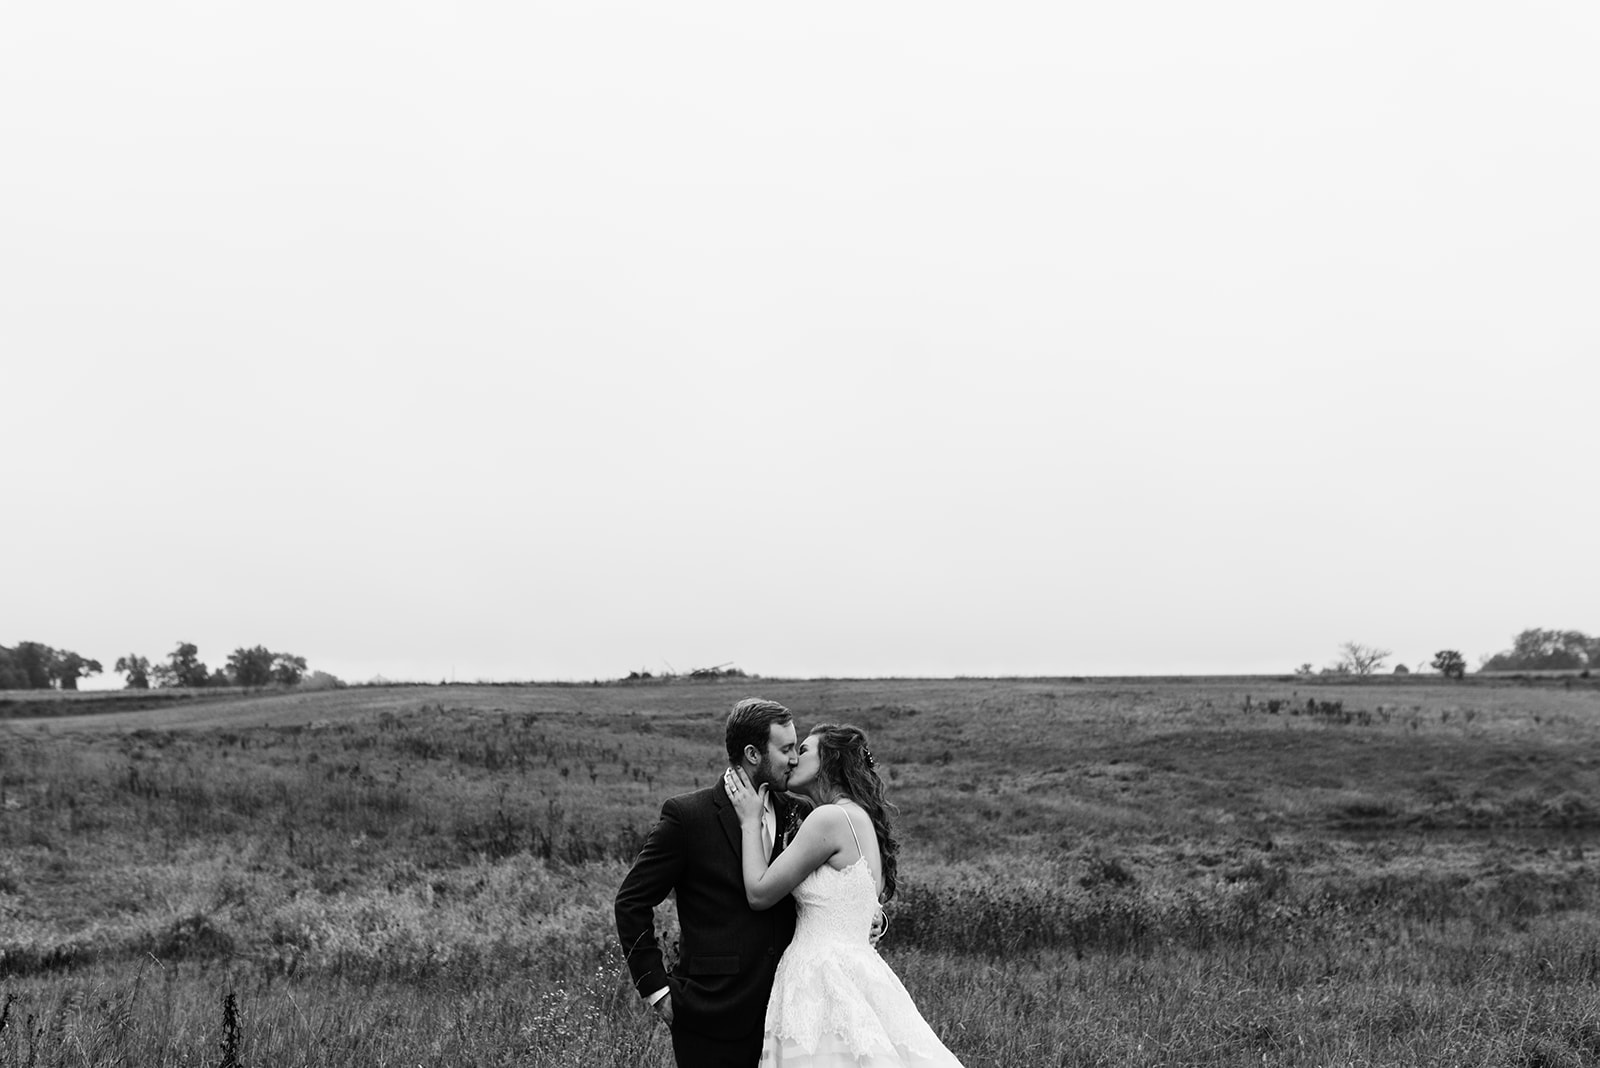 bride and groom kissing in field wellman iowa wedding